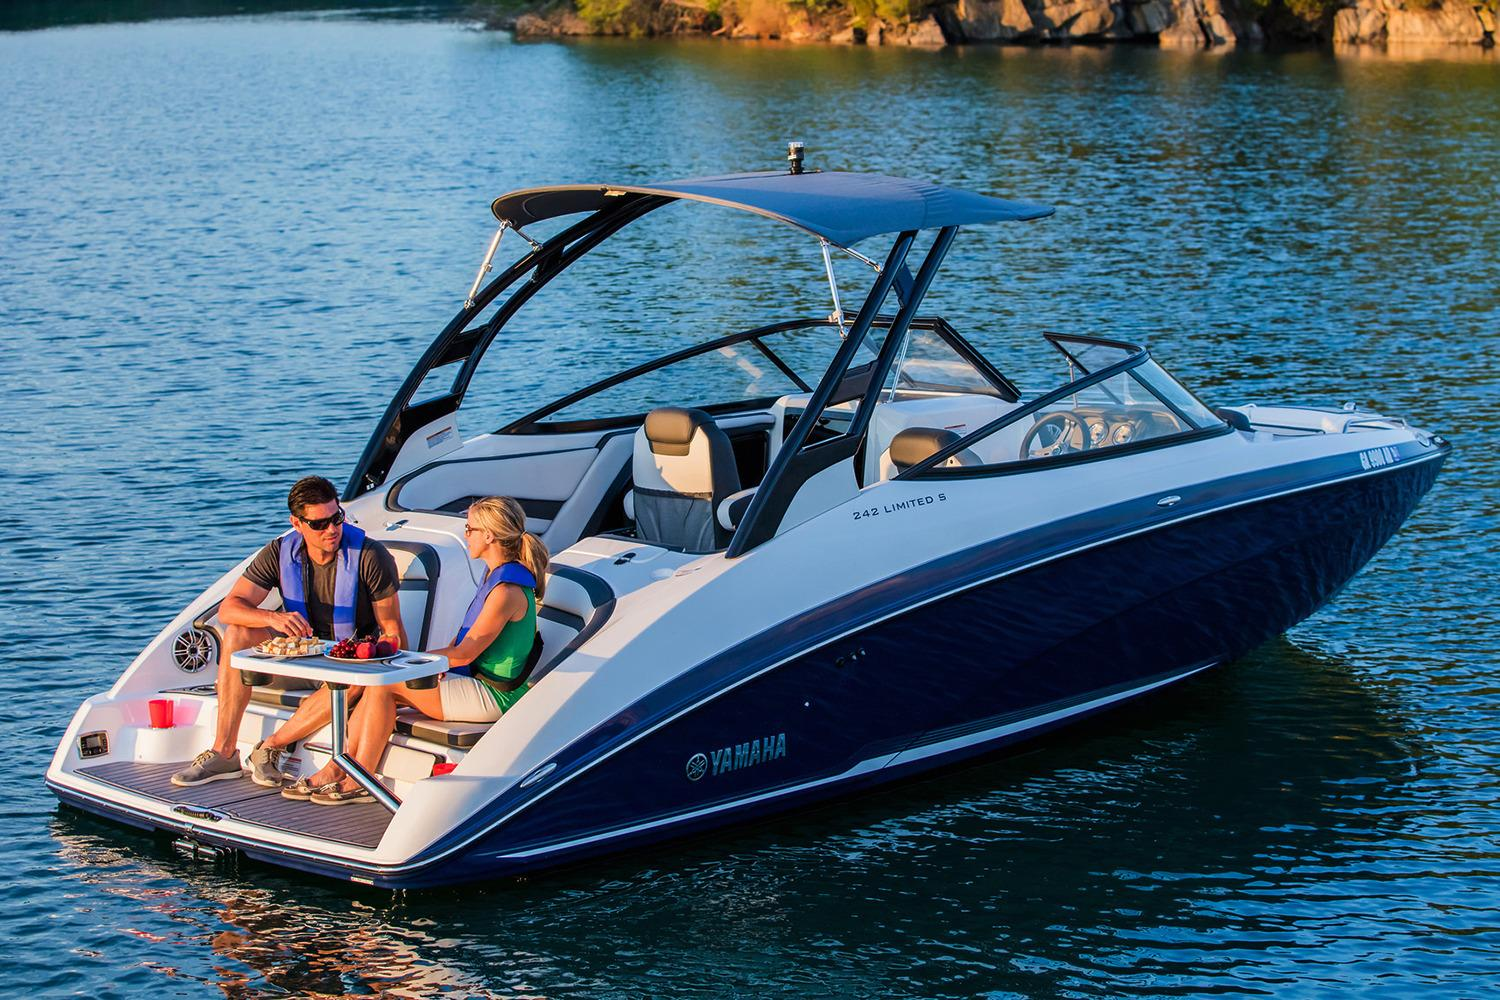 new 2017 yamaha 242 limited s power boats inboard in saint